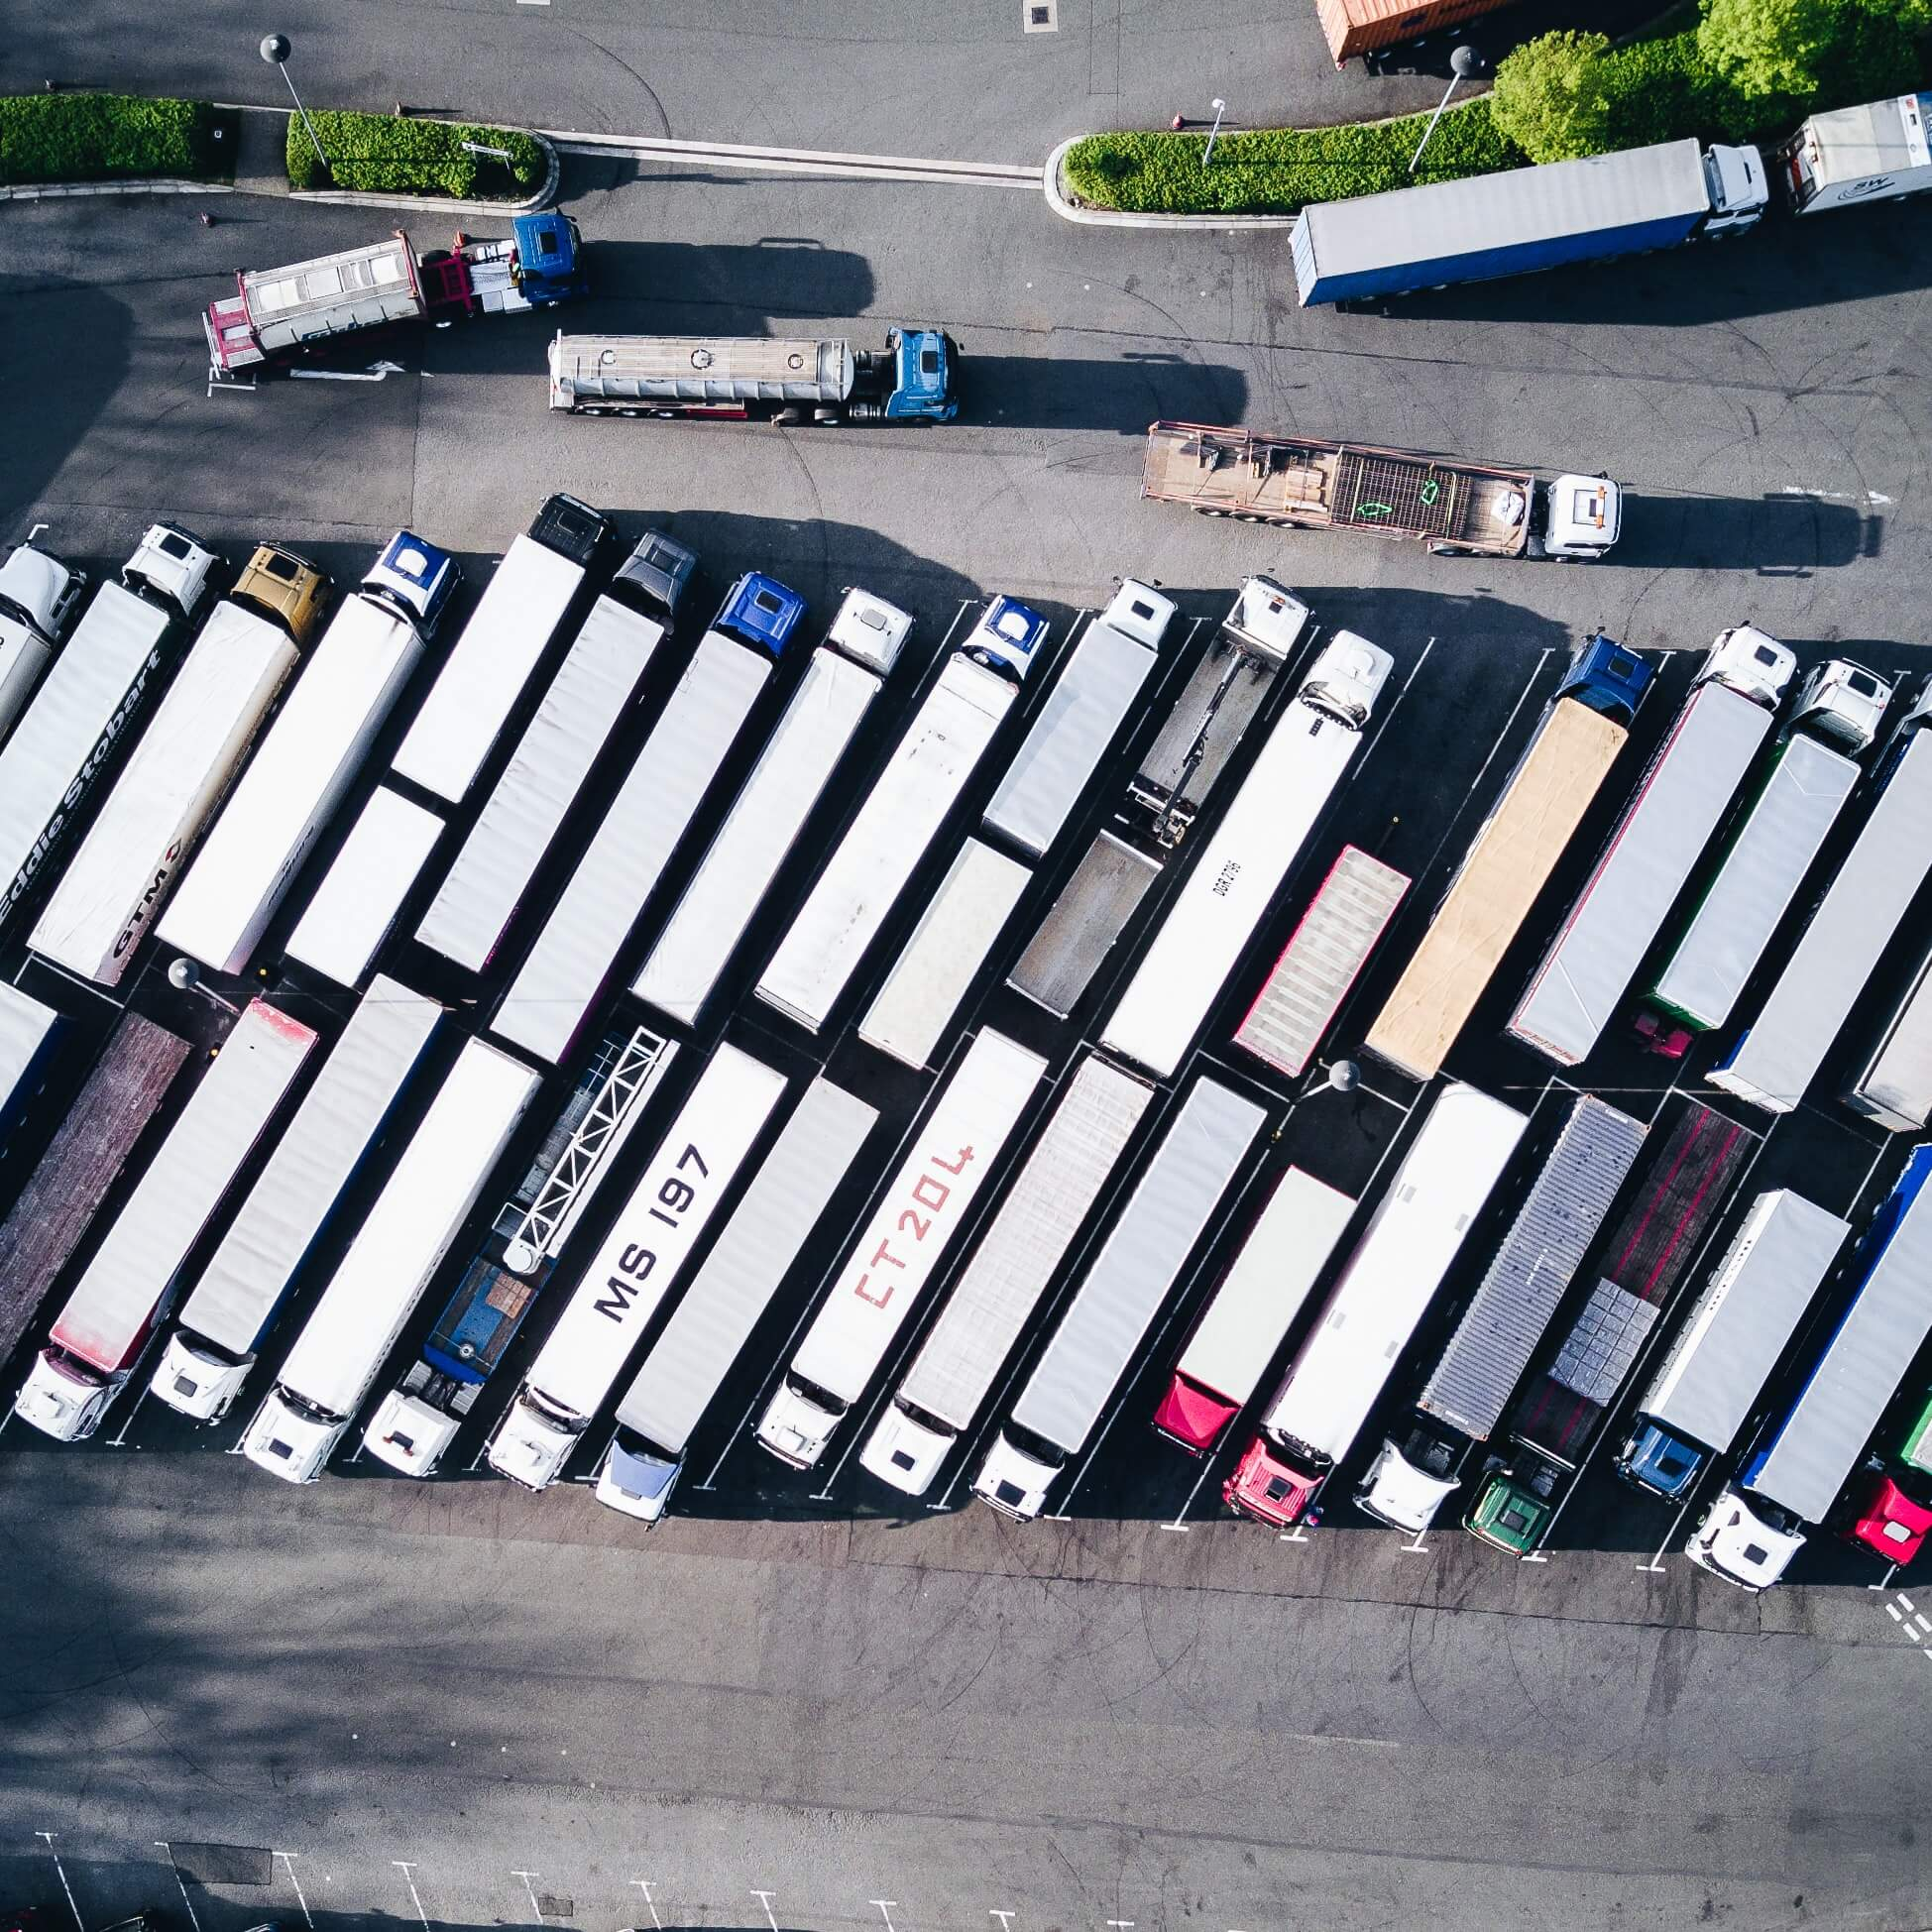 Aerial view of multiple truck fleets